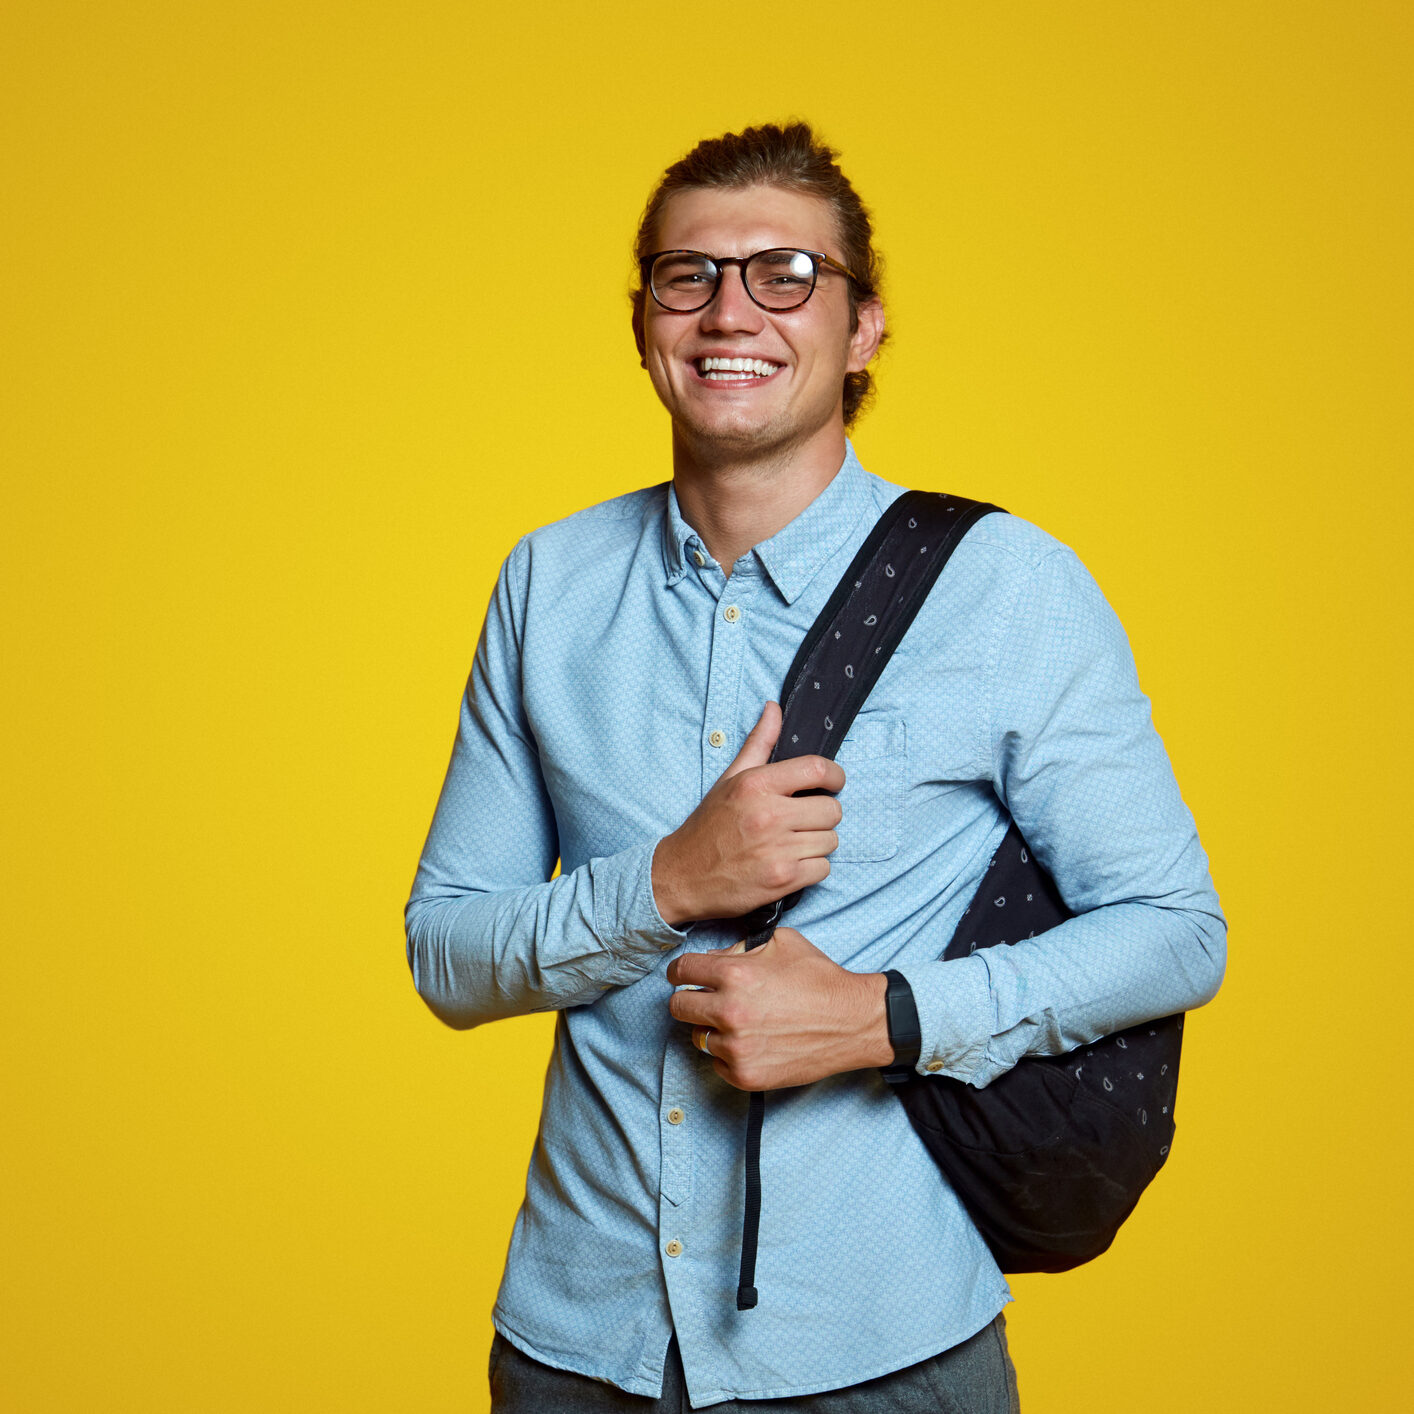 Handsome young student in blue casual shirt and eyeglasses holding backpack and smiling at camera on yellow background. Handsome man laughing and standing isolated over yellow wall.